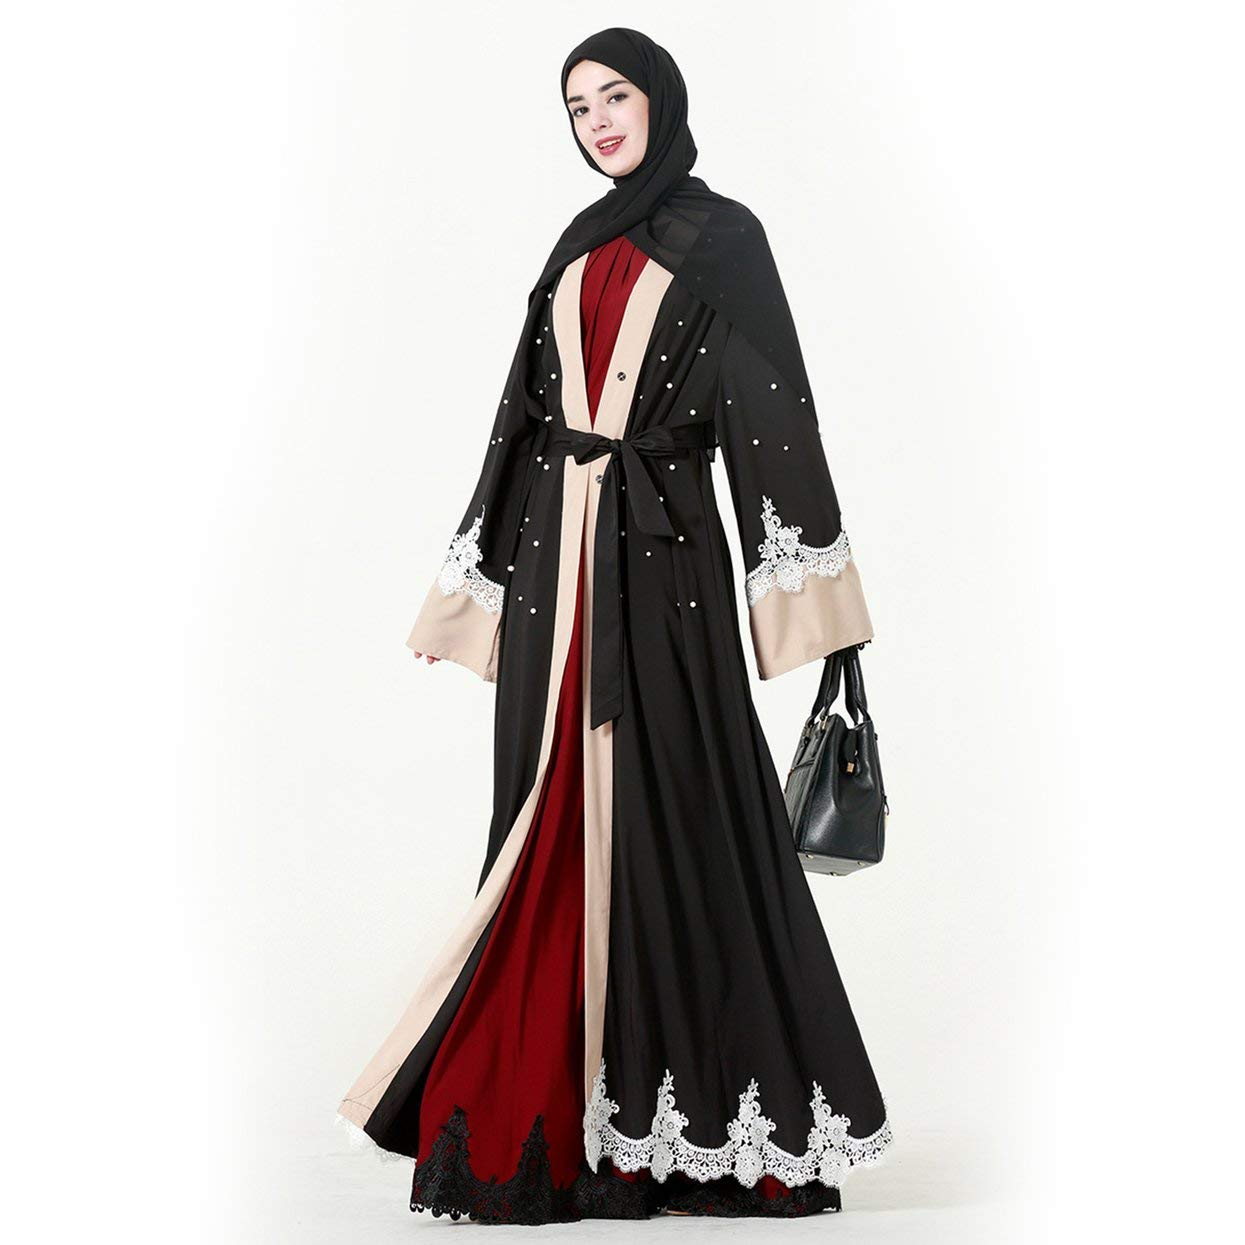 Elegant Women Full Length Loose Lace Splicing Patchwork Muslim Abaya Muslem Caftans Long Robes Arabic Dubai Dress LoveOlvidoY